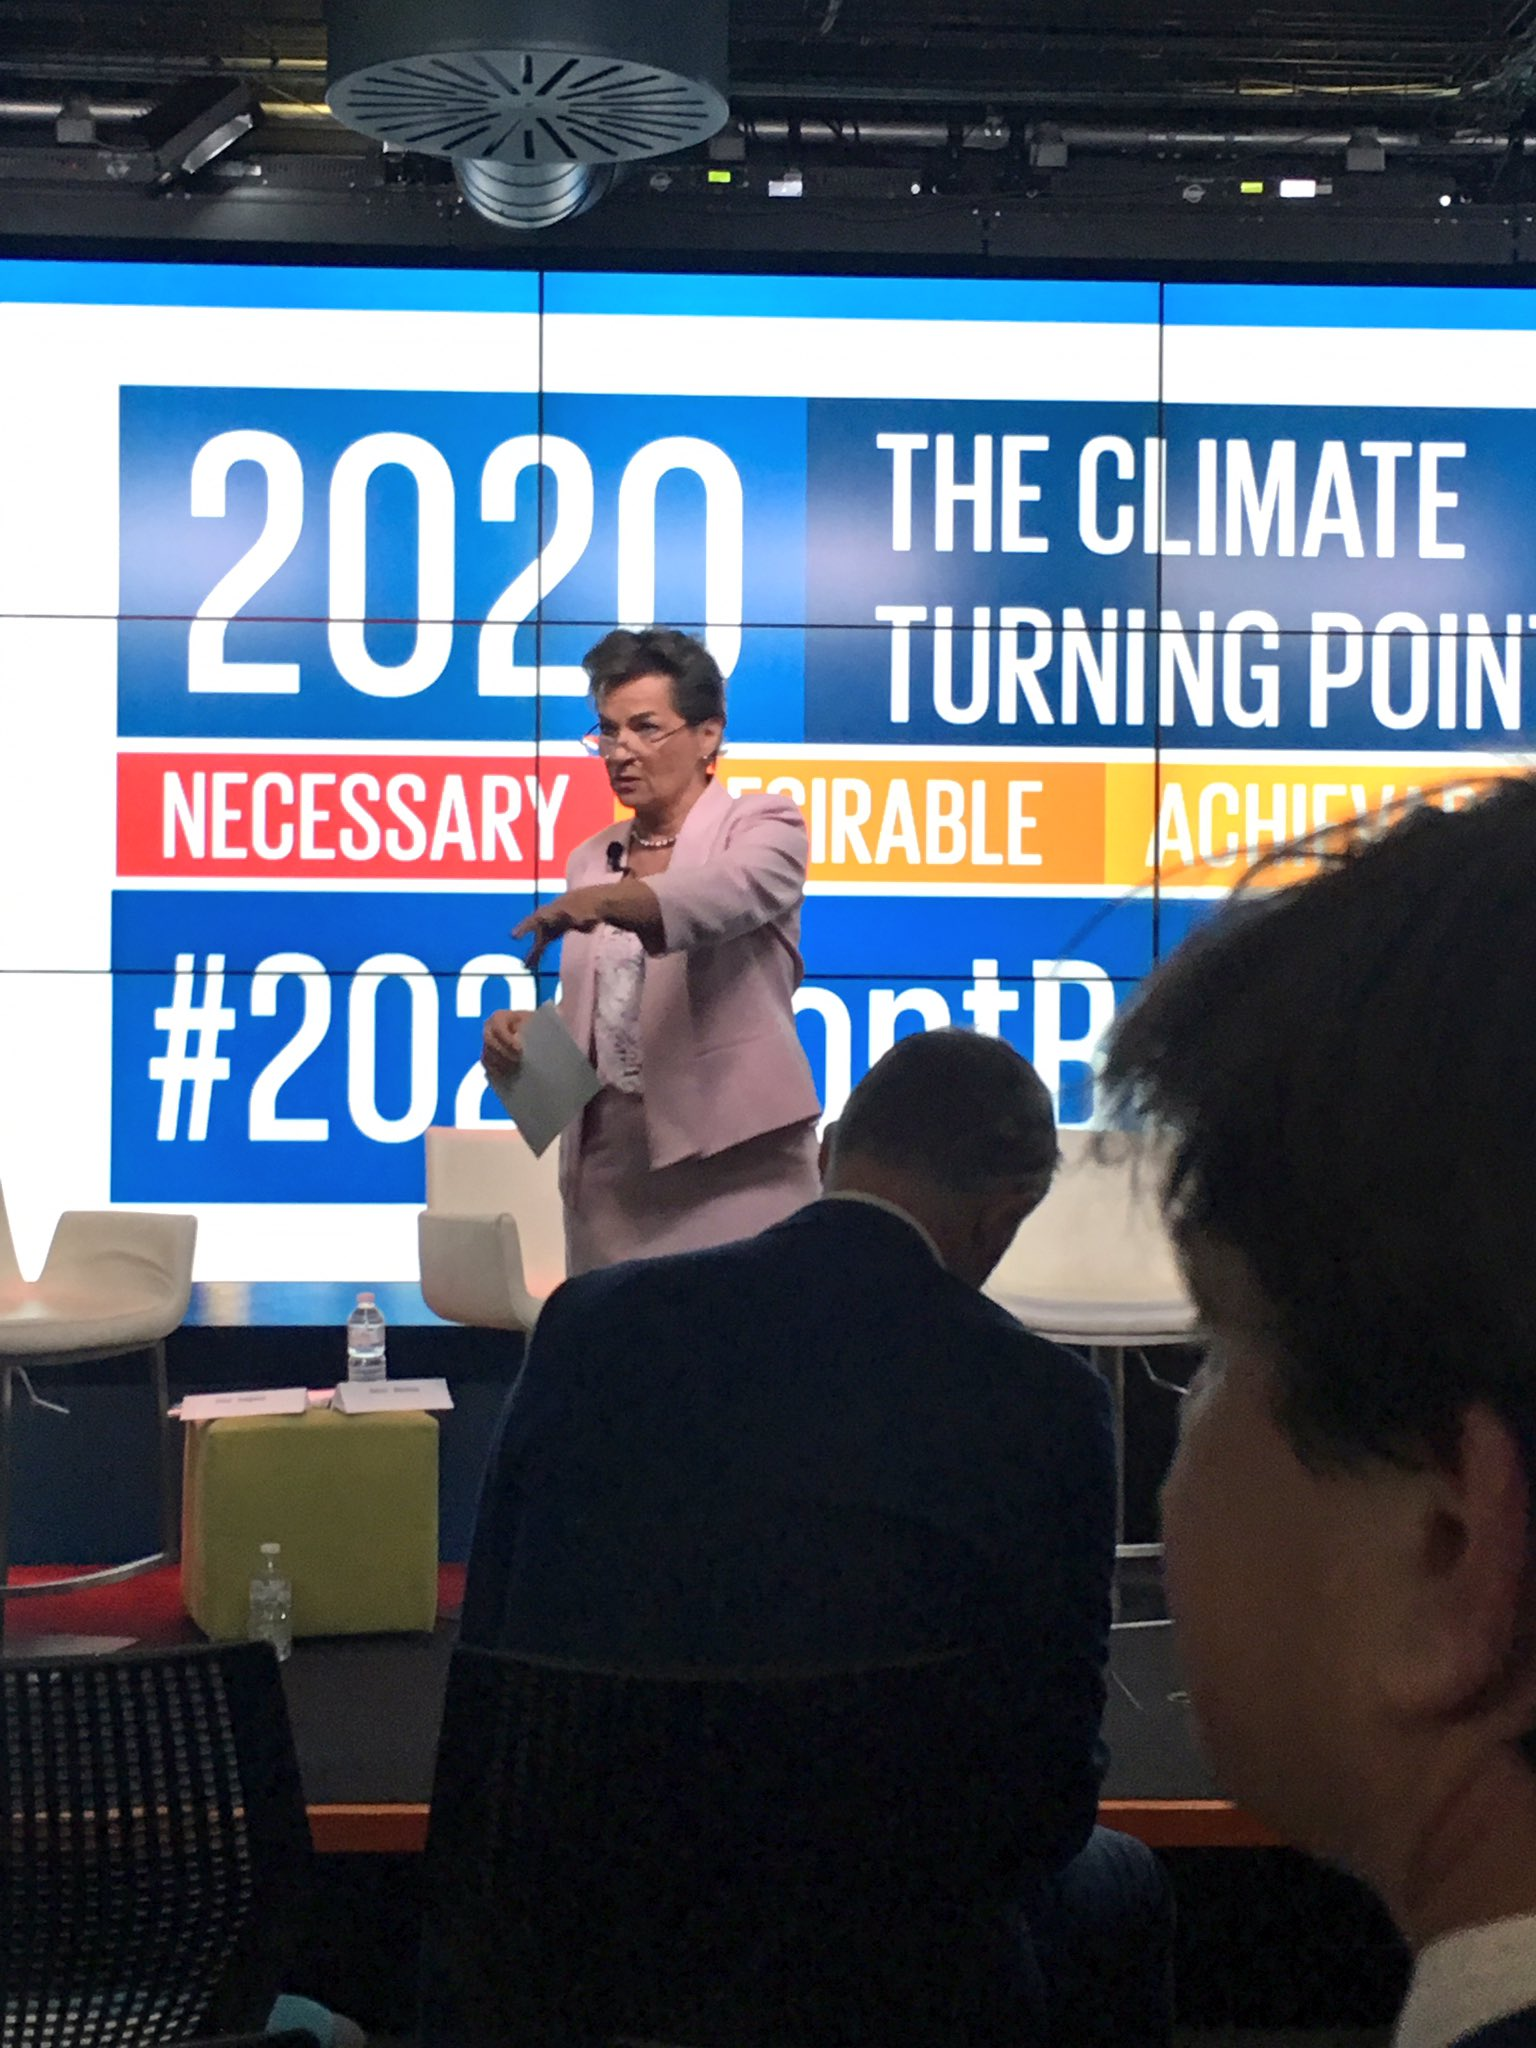 Watch the launch of #Mission2020 starting now: https://t.co/3J8GFnIb9D #2020dontbelate #ClimateAction https://t.co/BUJQwCOhpE